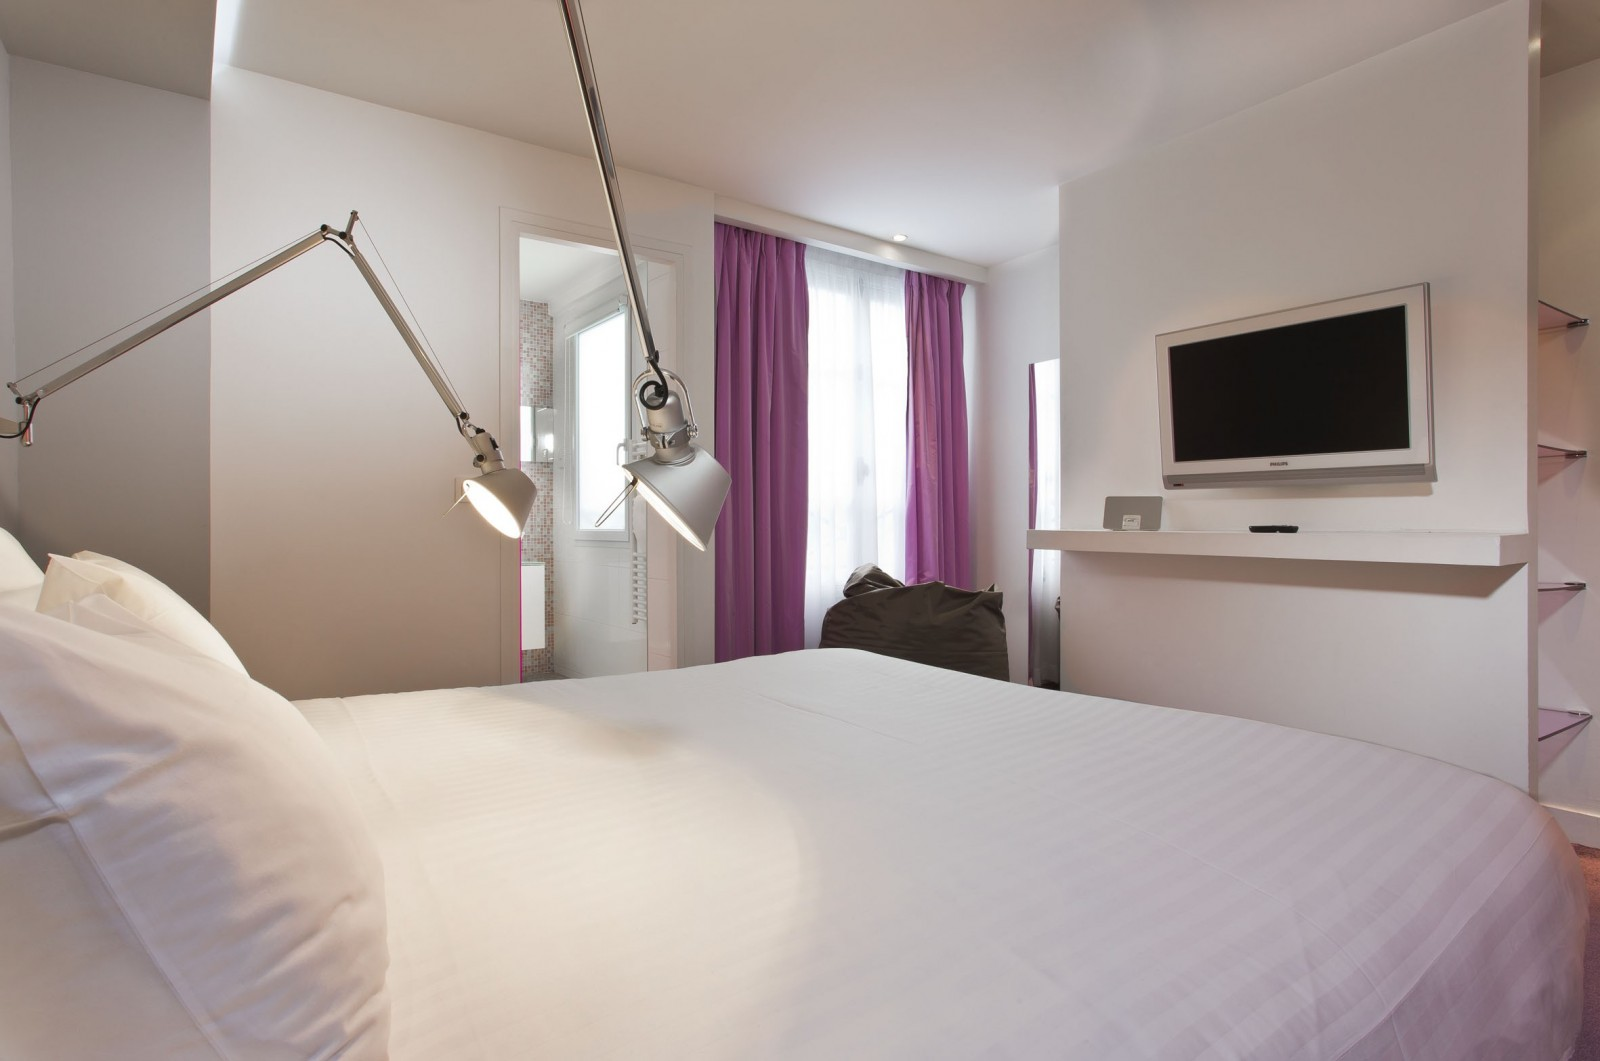 Rooms - Color Design Hotel - Paris - Gare de Lyon - Bastille